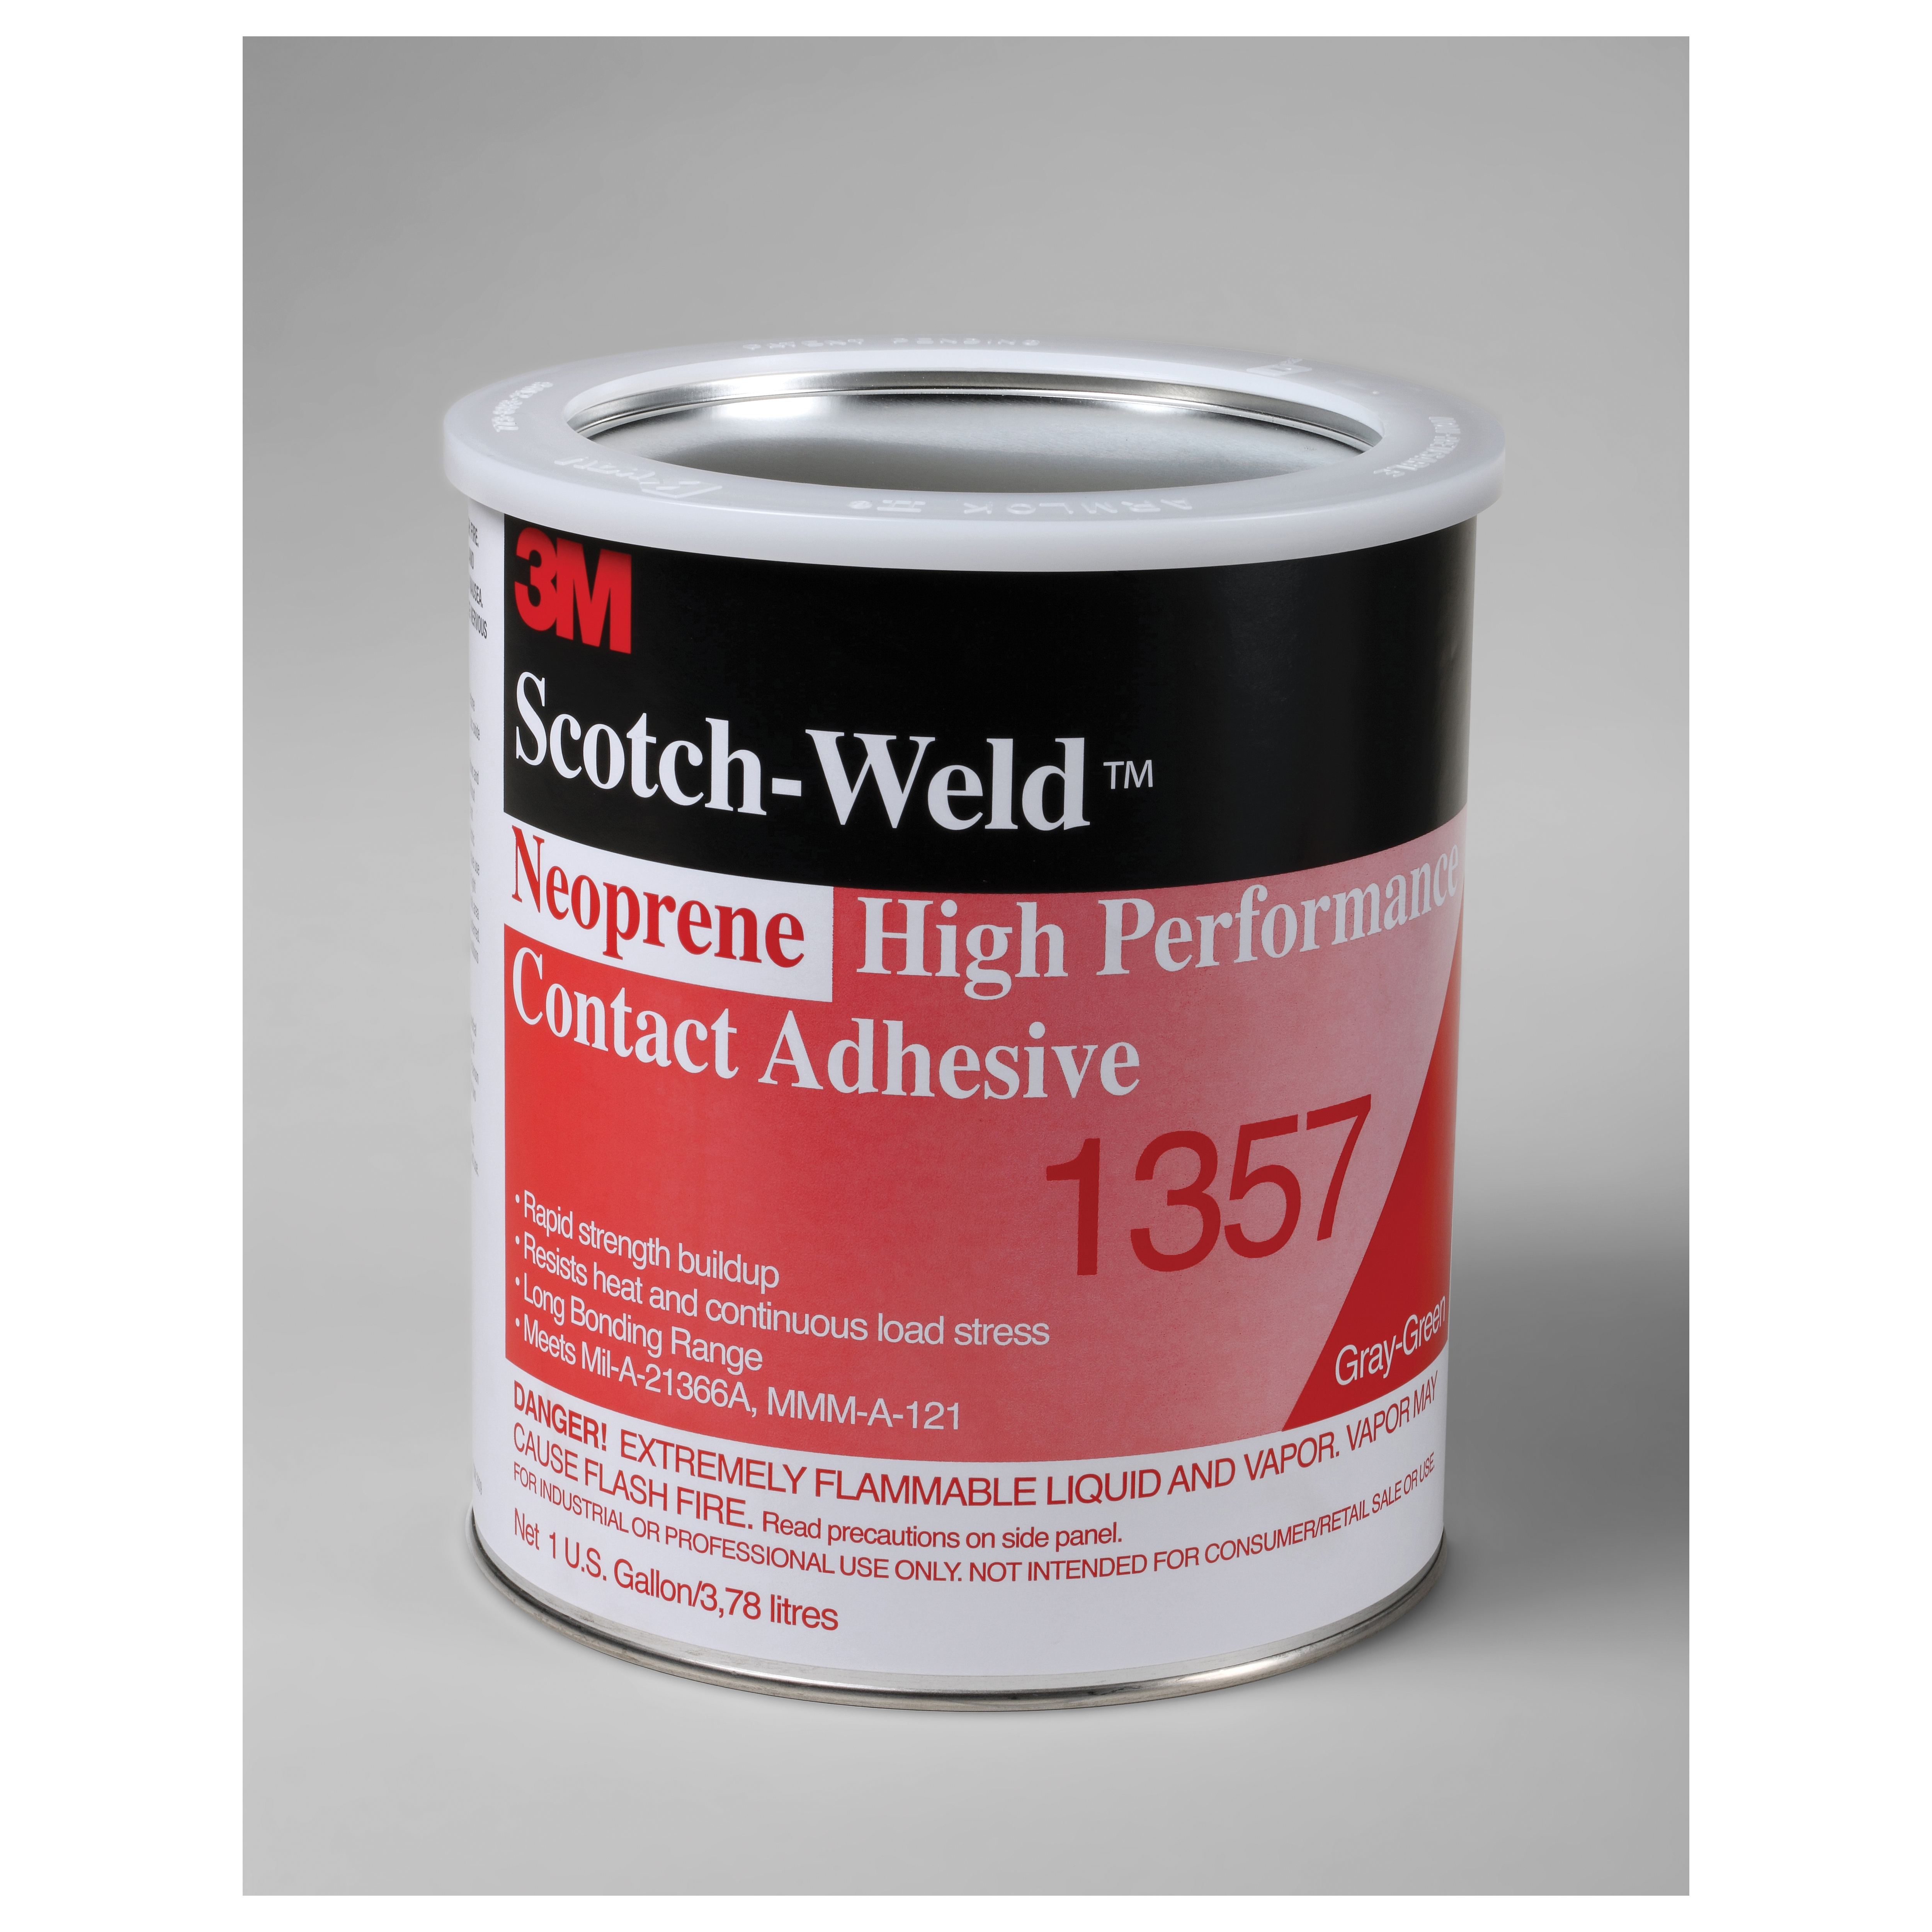 3M™ 1357-1quart Flammable High Performance High Strength Contact Adhesive, 1 qt Can, Gray/Green, Up to 30 min Curing